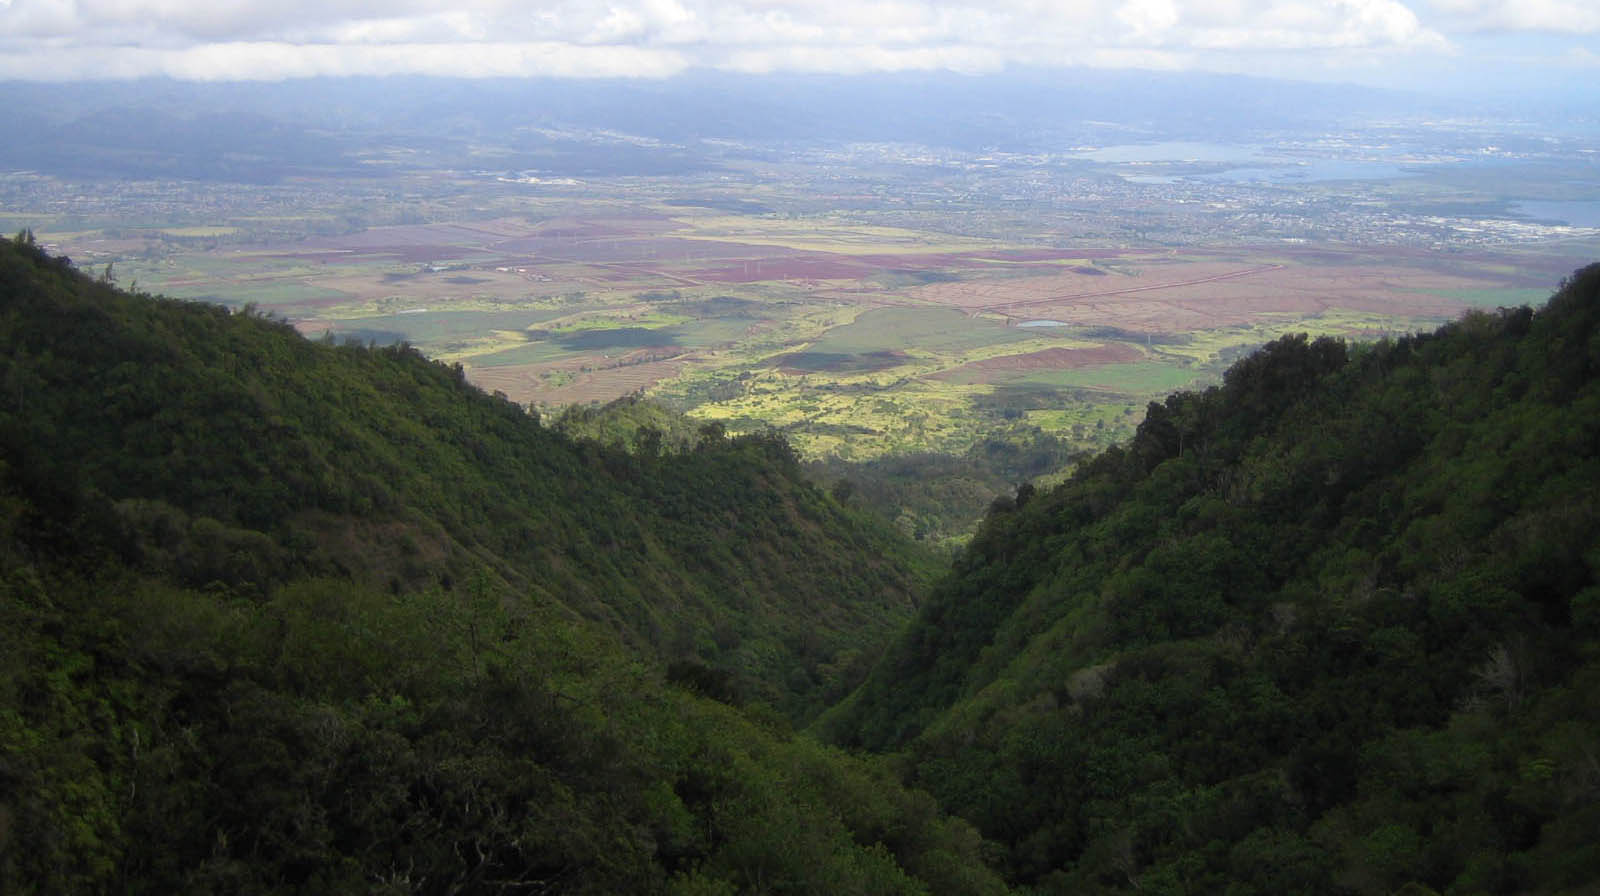 View through a green mountain valley with farm fields in the distance.